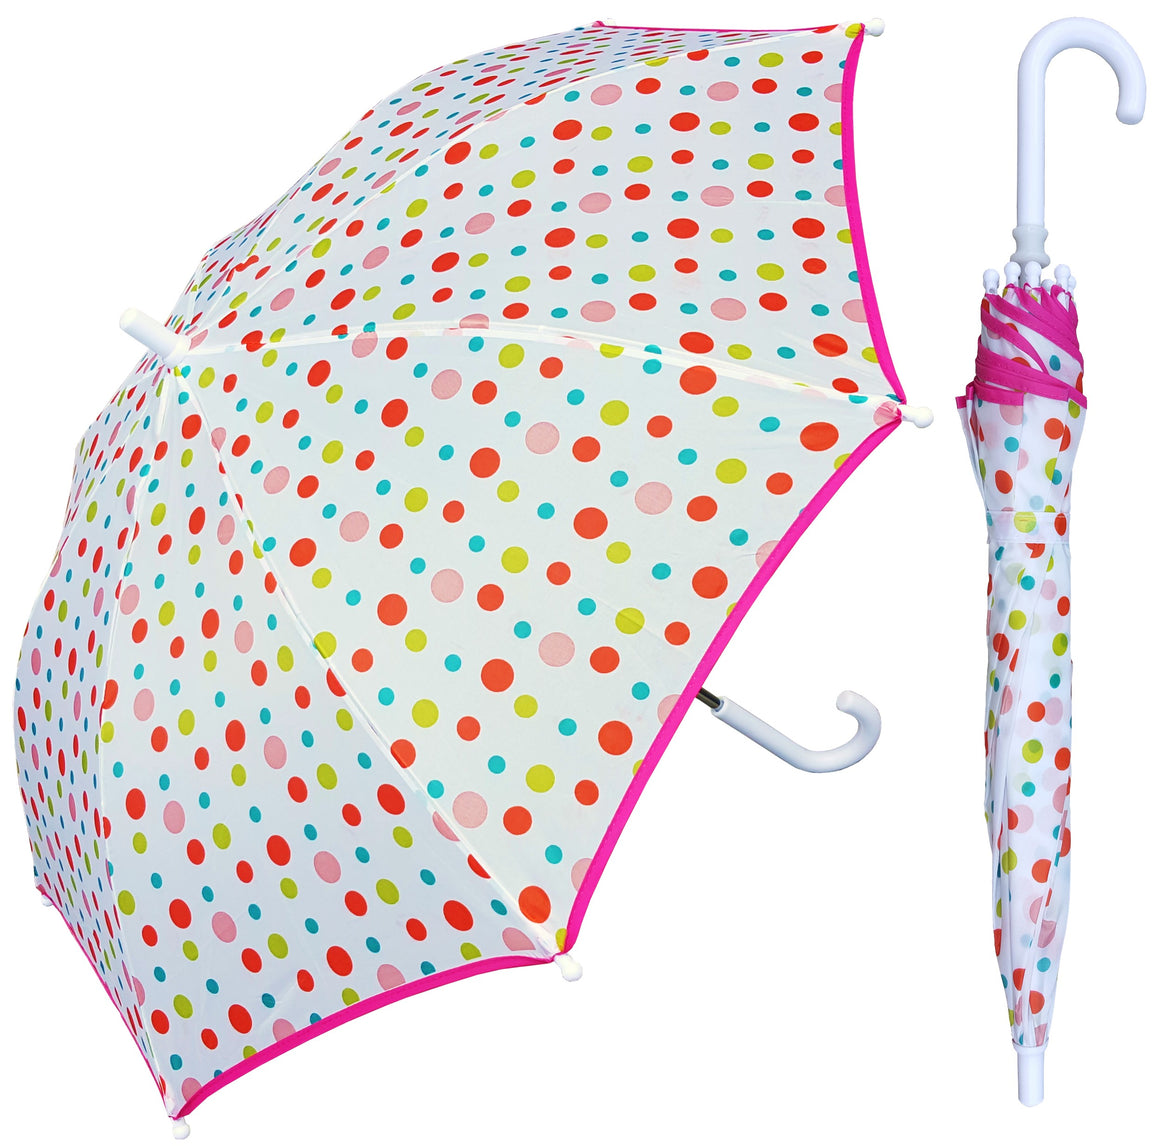 Wholesale Multidot Print Children's Umbrella